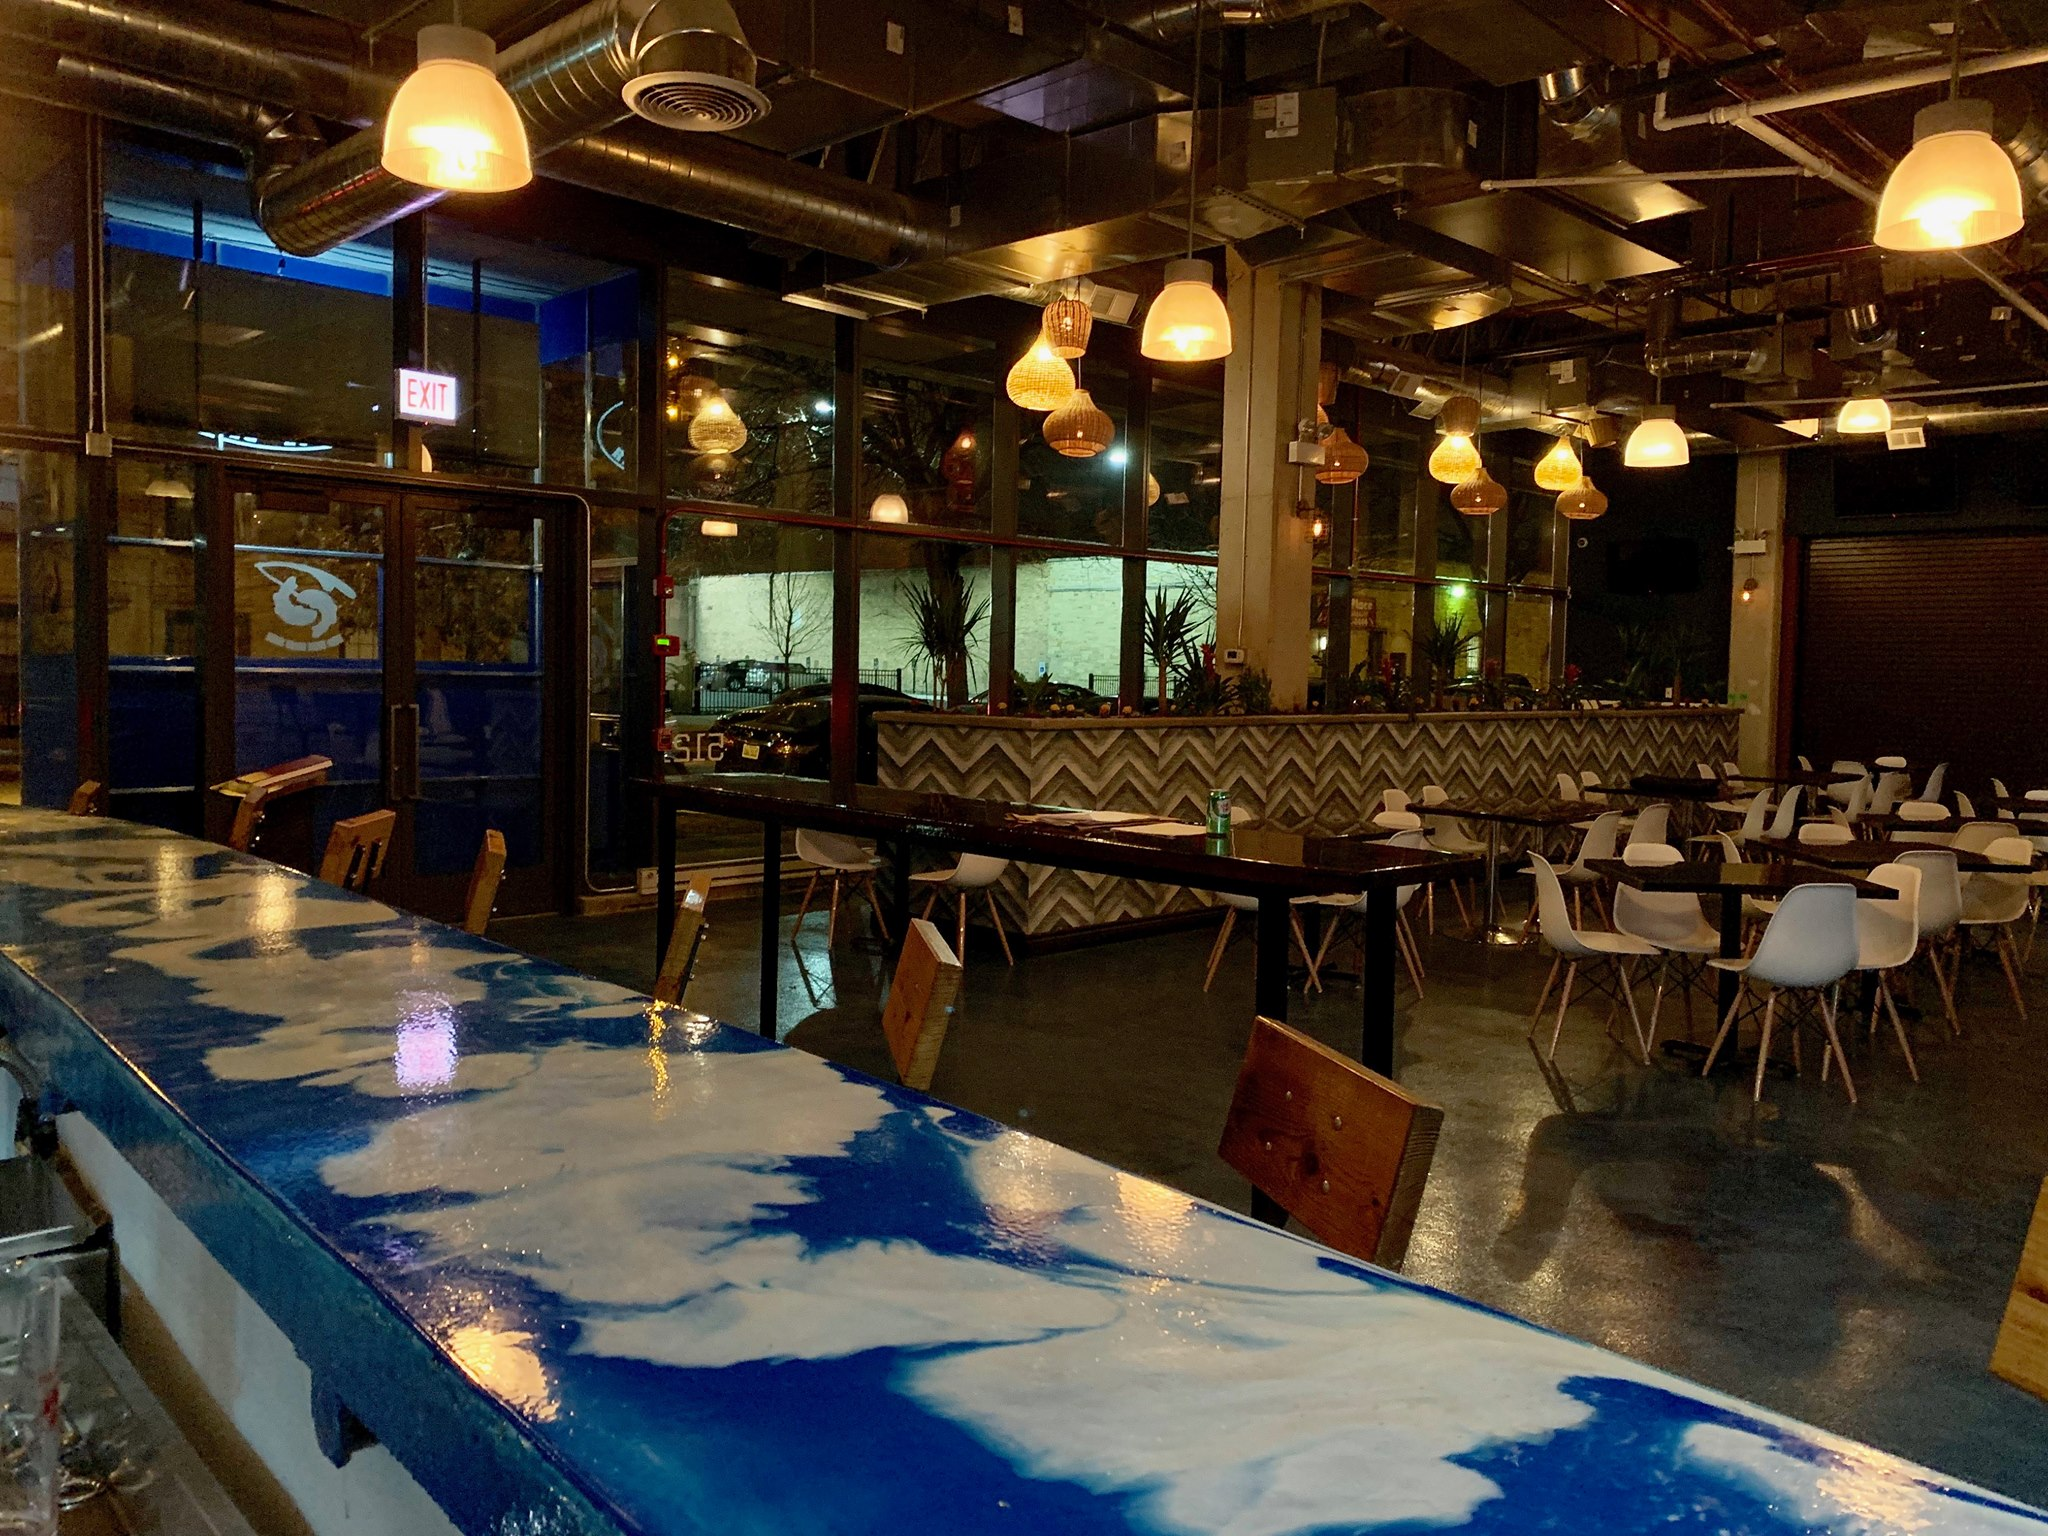 Hyde Park Restaurant to Split Into Two With Barbecue and Seafood Menus